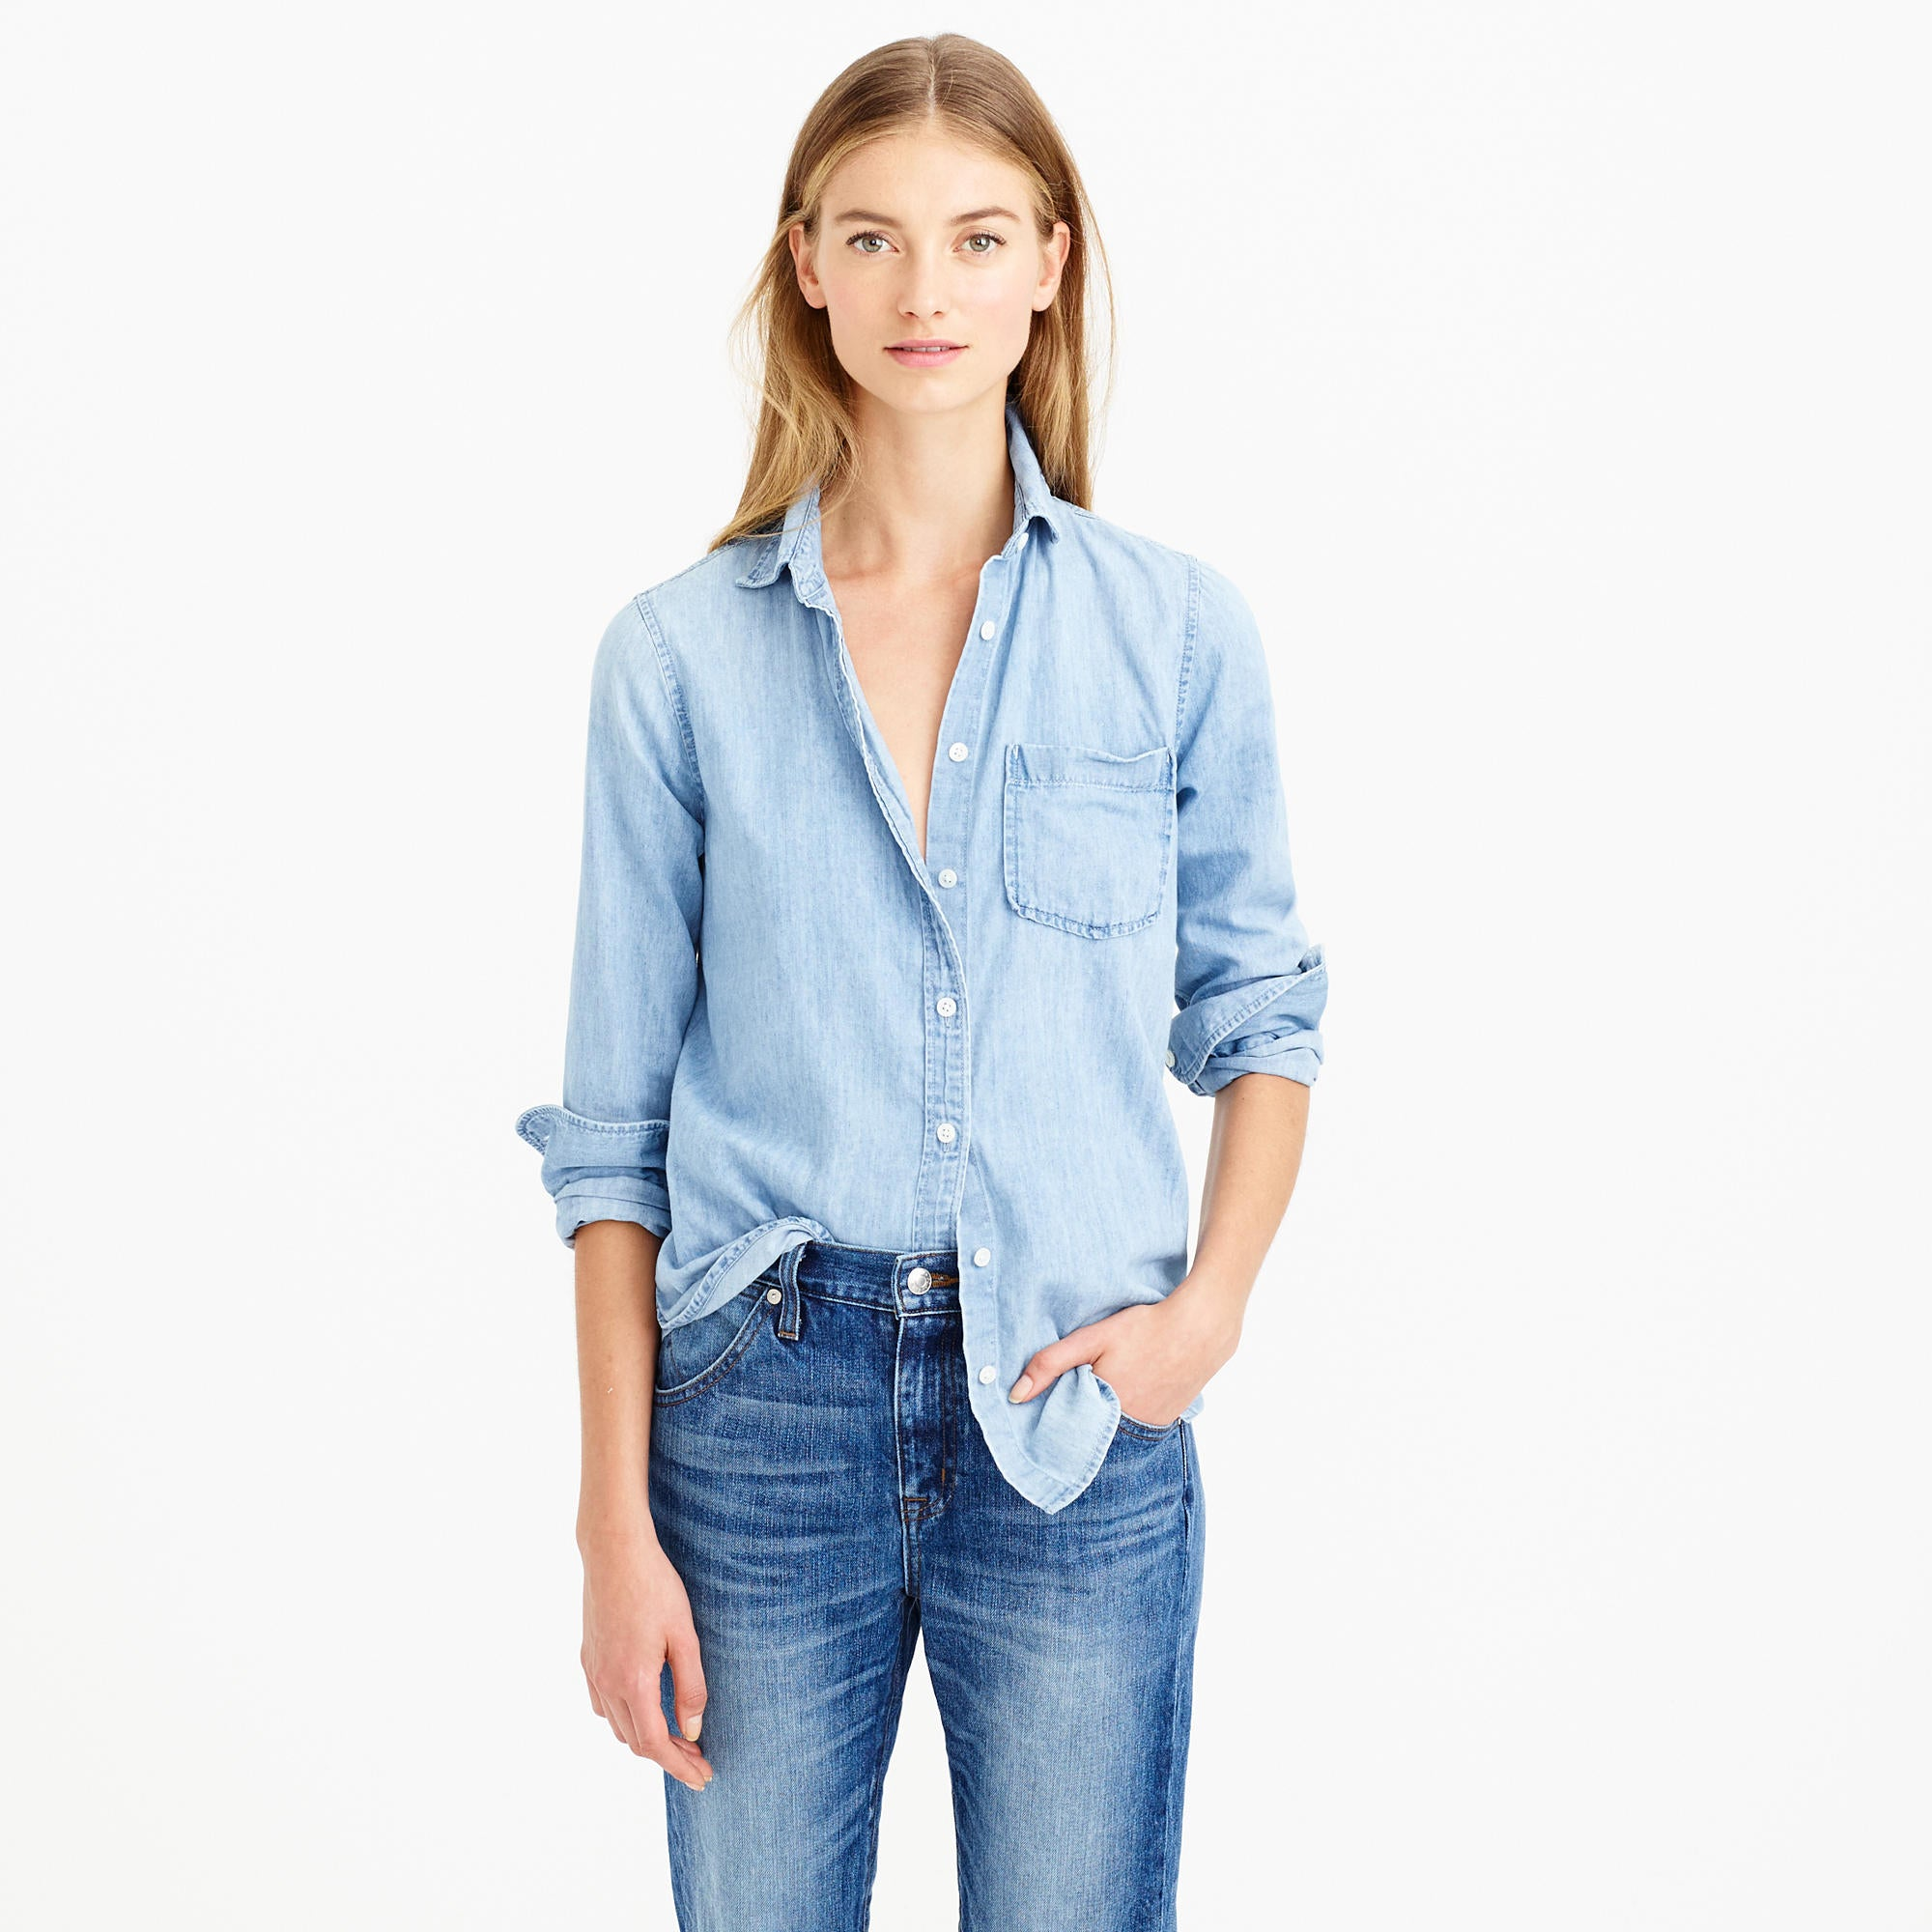 Prepare to see a lot of denim on denim for spring. Above, Jcrew Chambray Pocket Shirt.